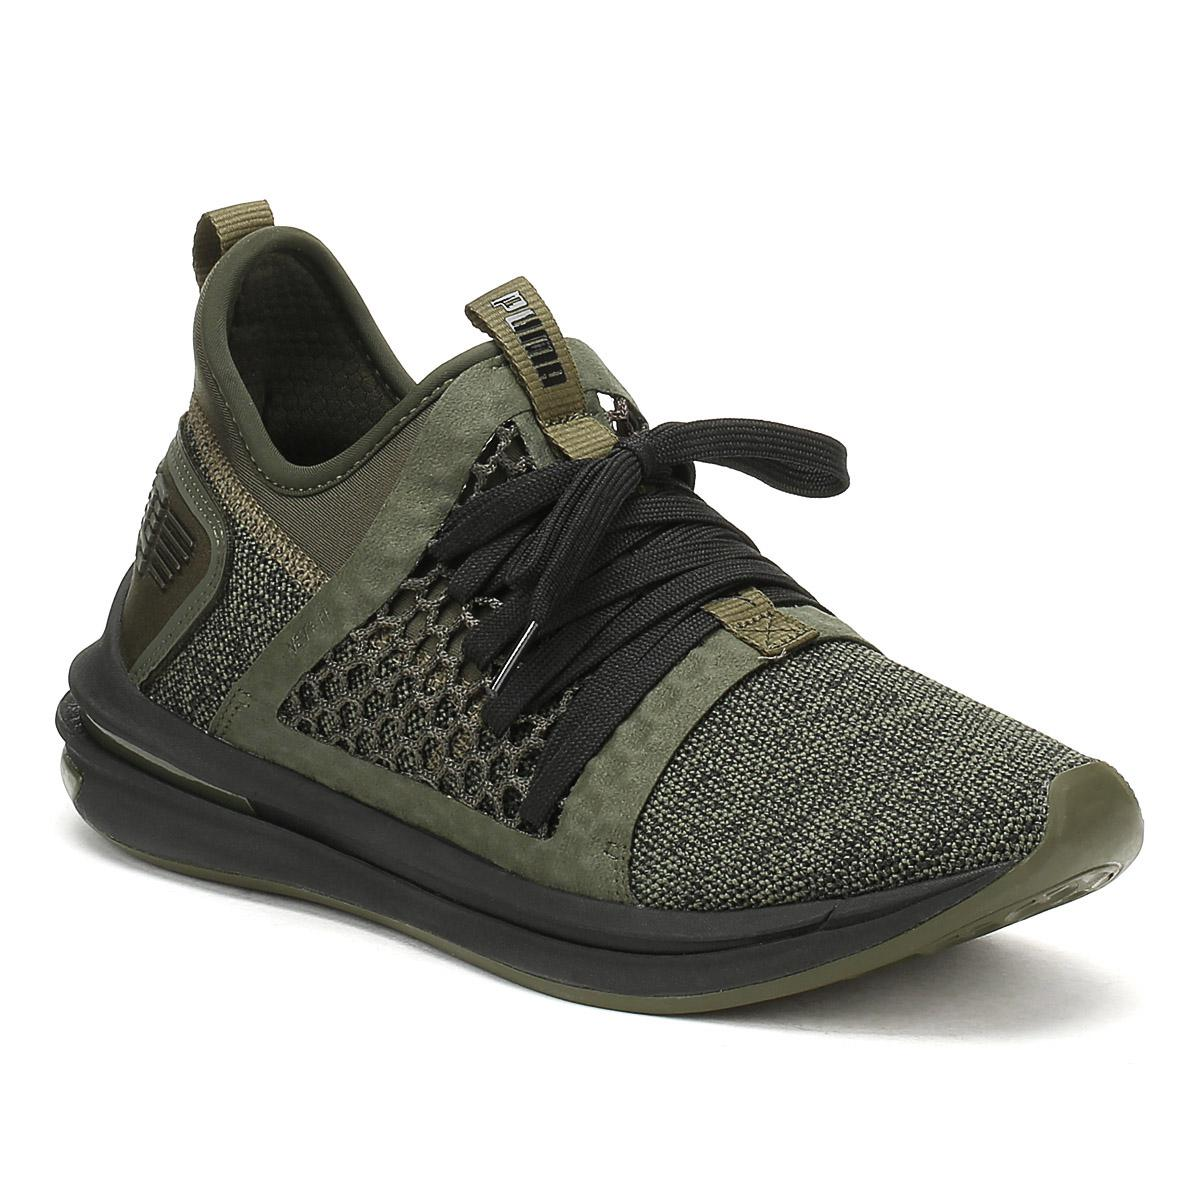 a763a86ce4b8 Lyst - PUMA Mens Forest Green Ignite Limitless Sr Netfit Trainers in ...